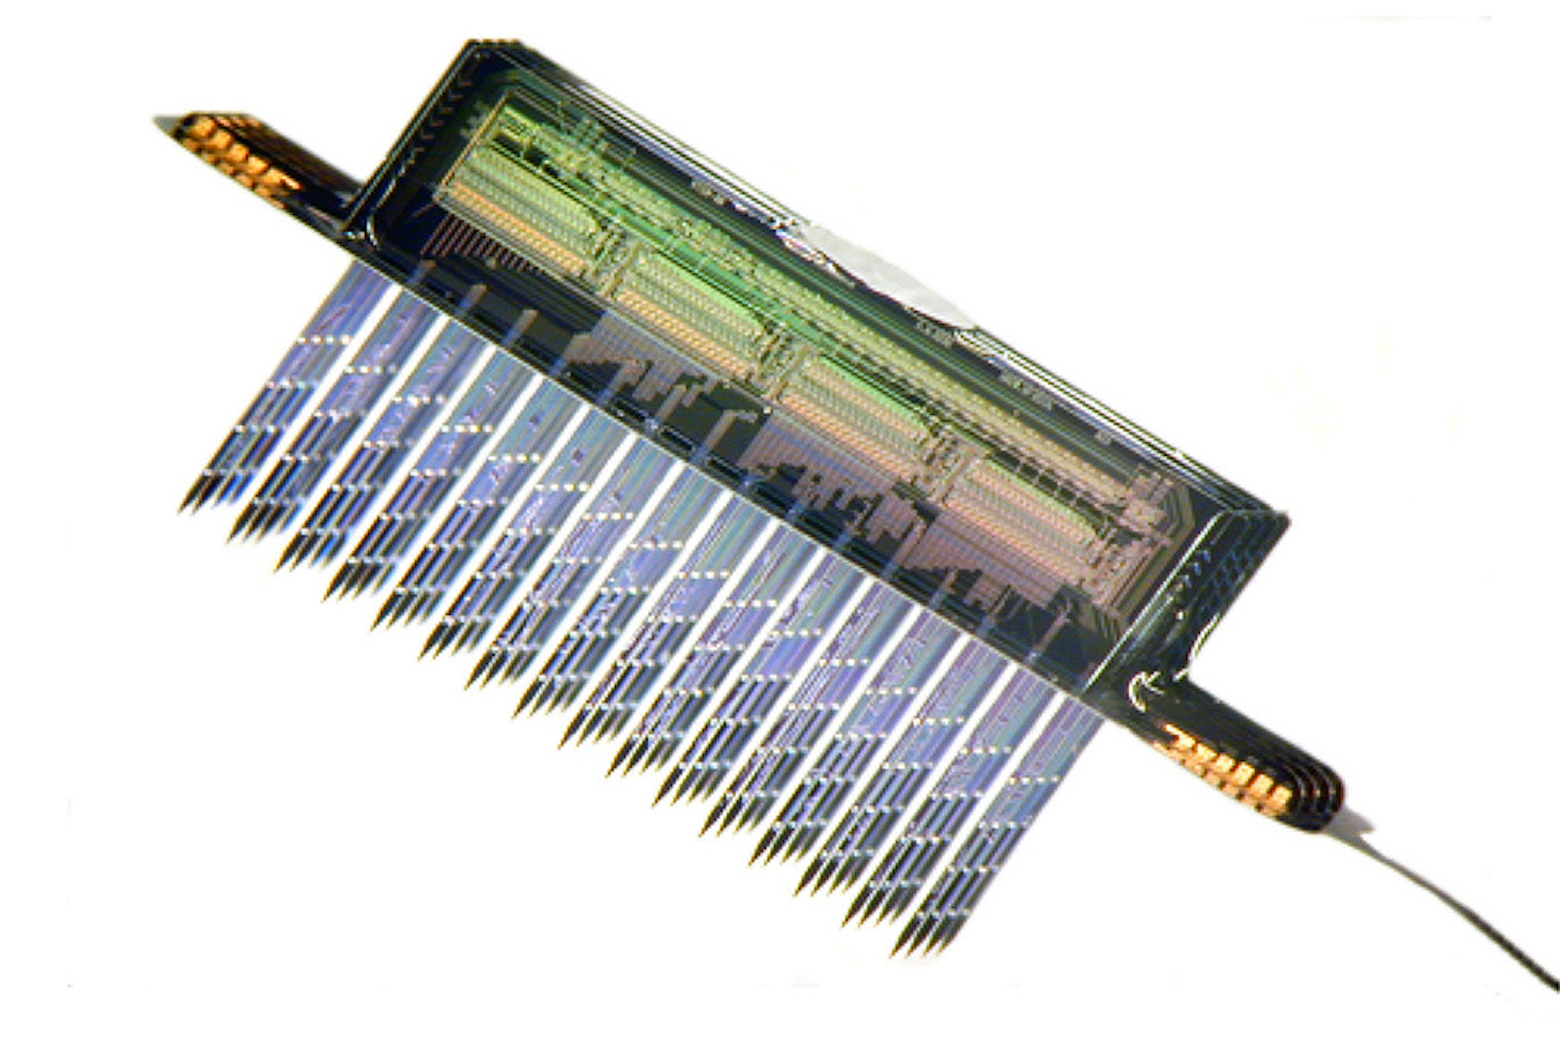 close-up of 256-site four-probe neuroelectric interface